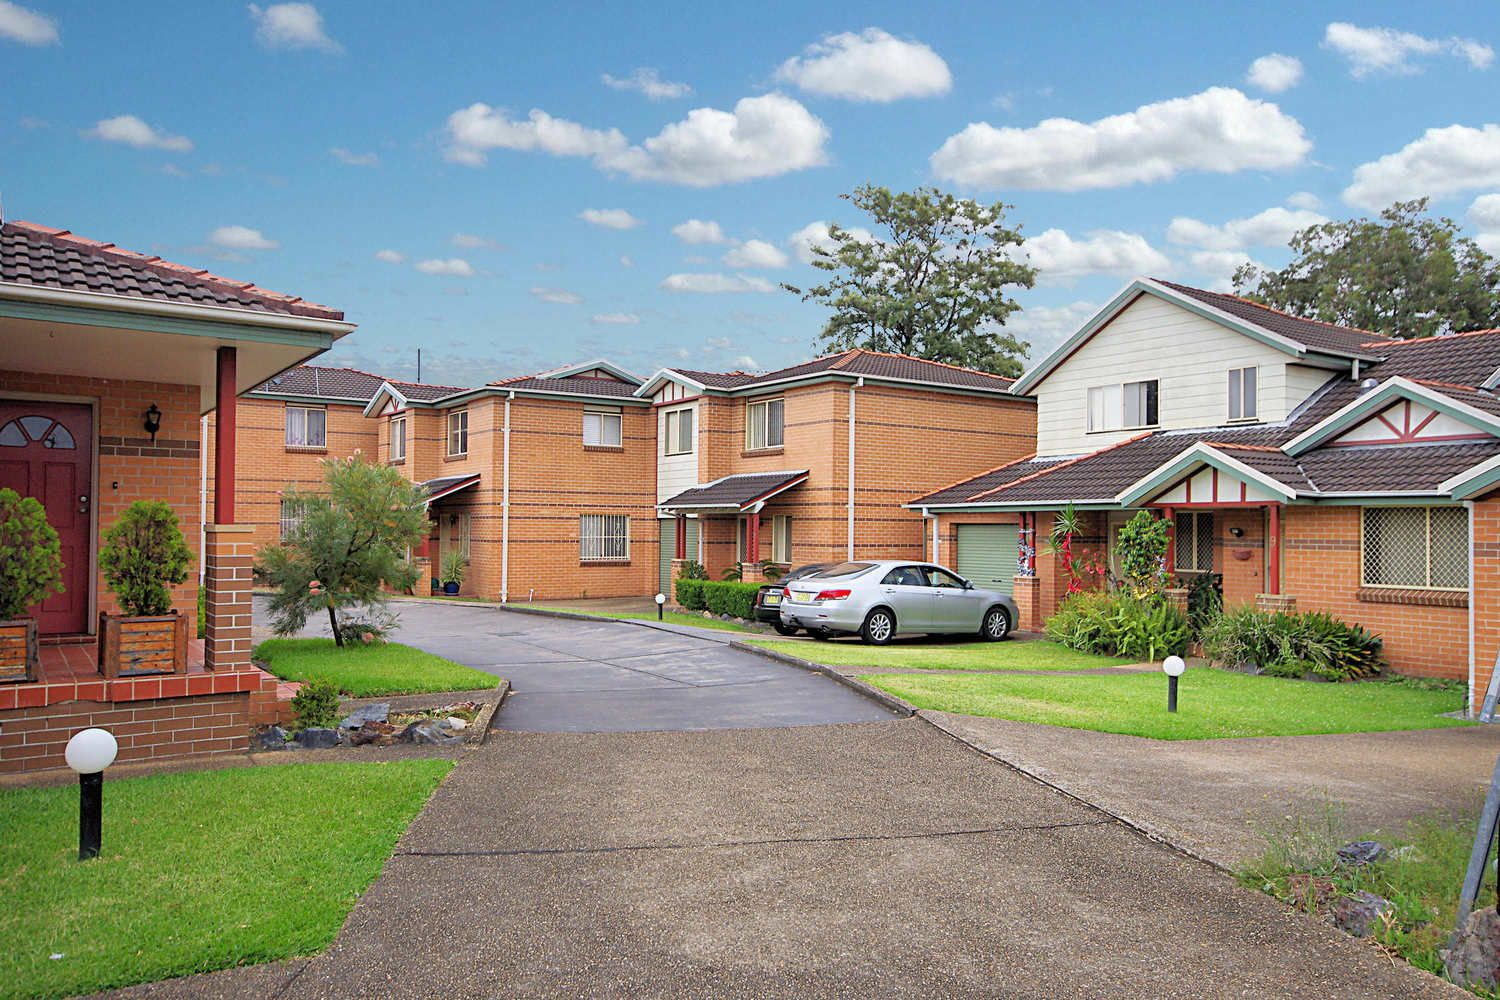 6/45-51 ROBINSON NTH Street, Wiley Park NSW 2195, Image 0